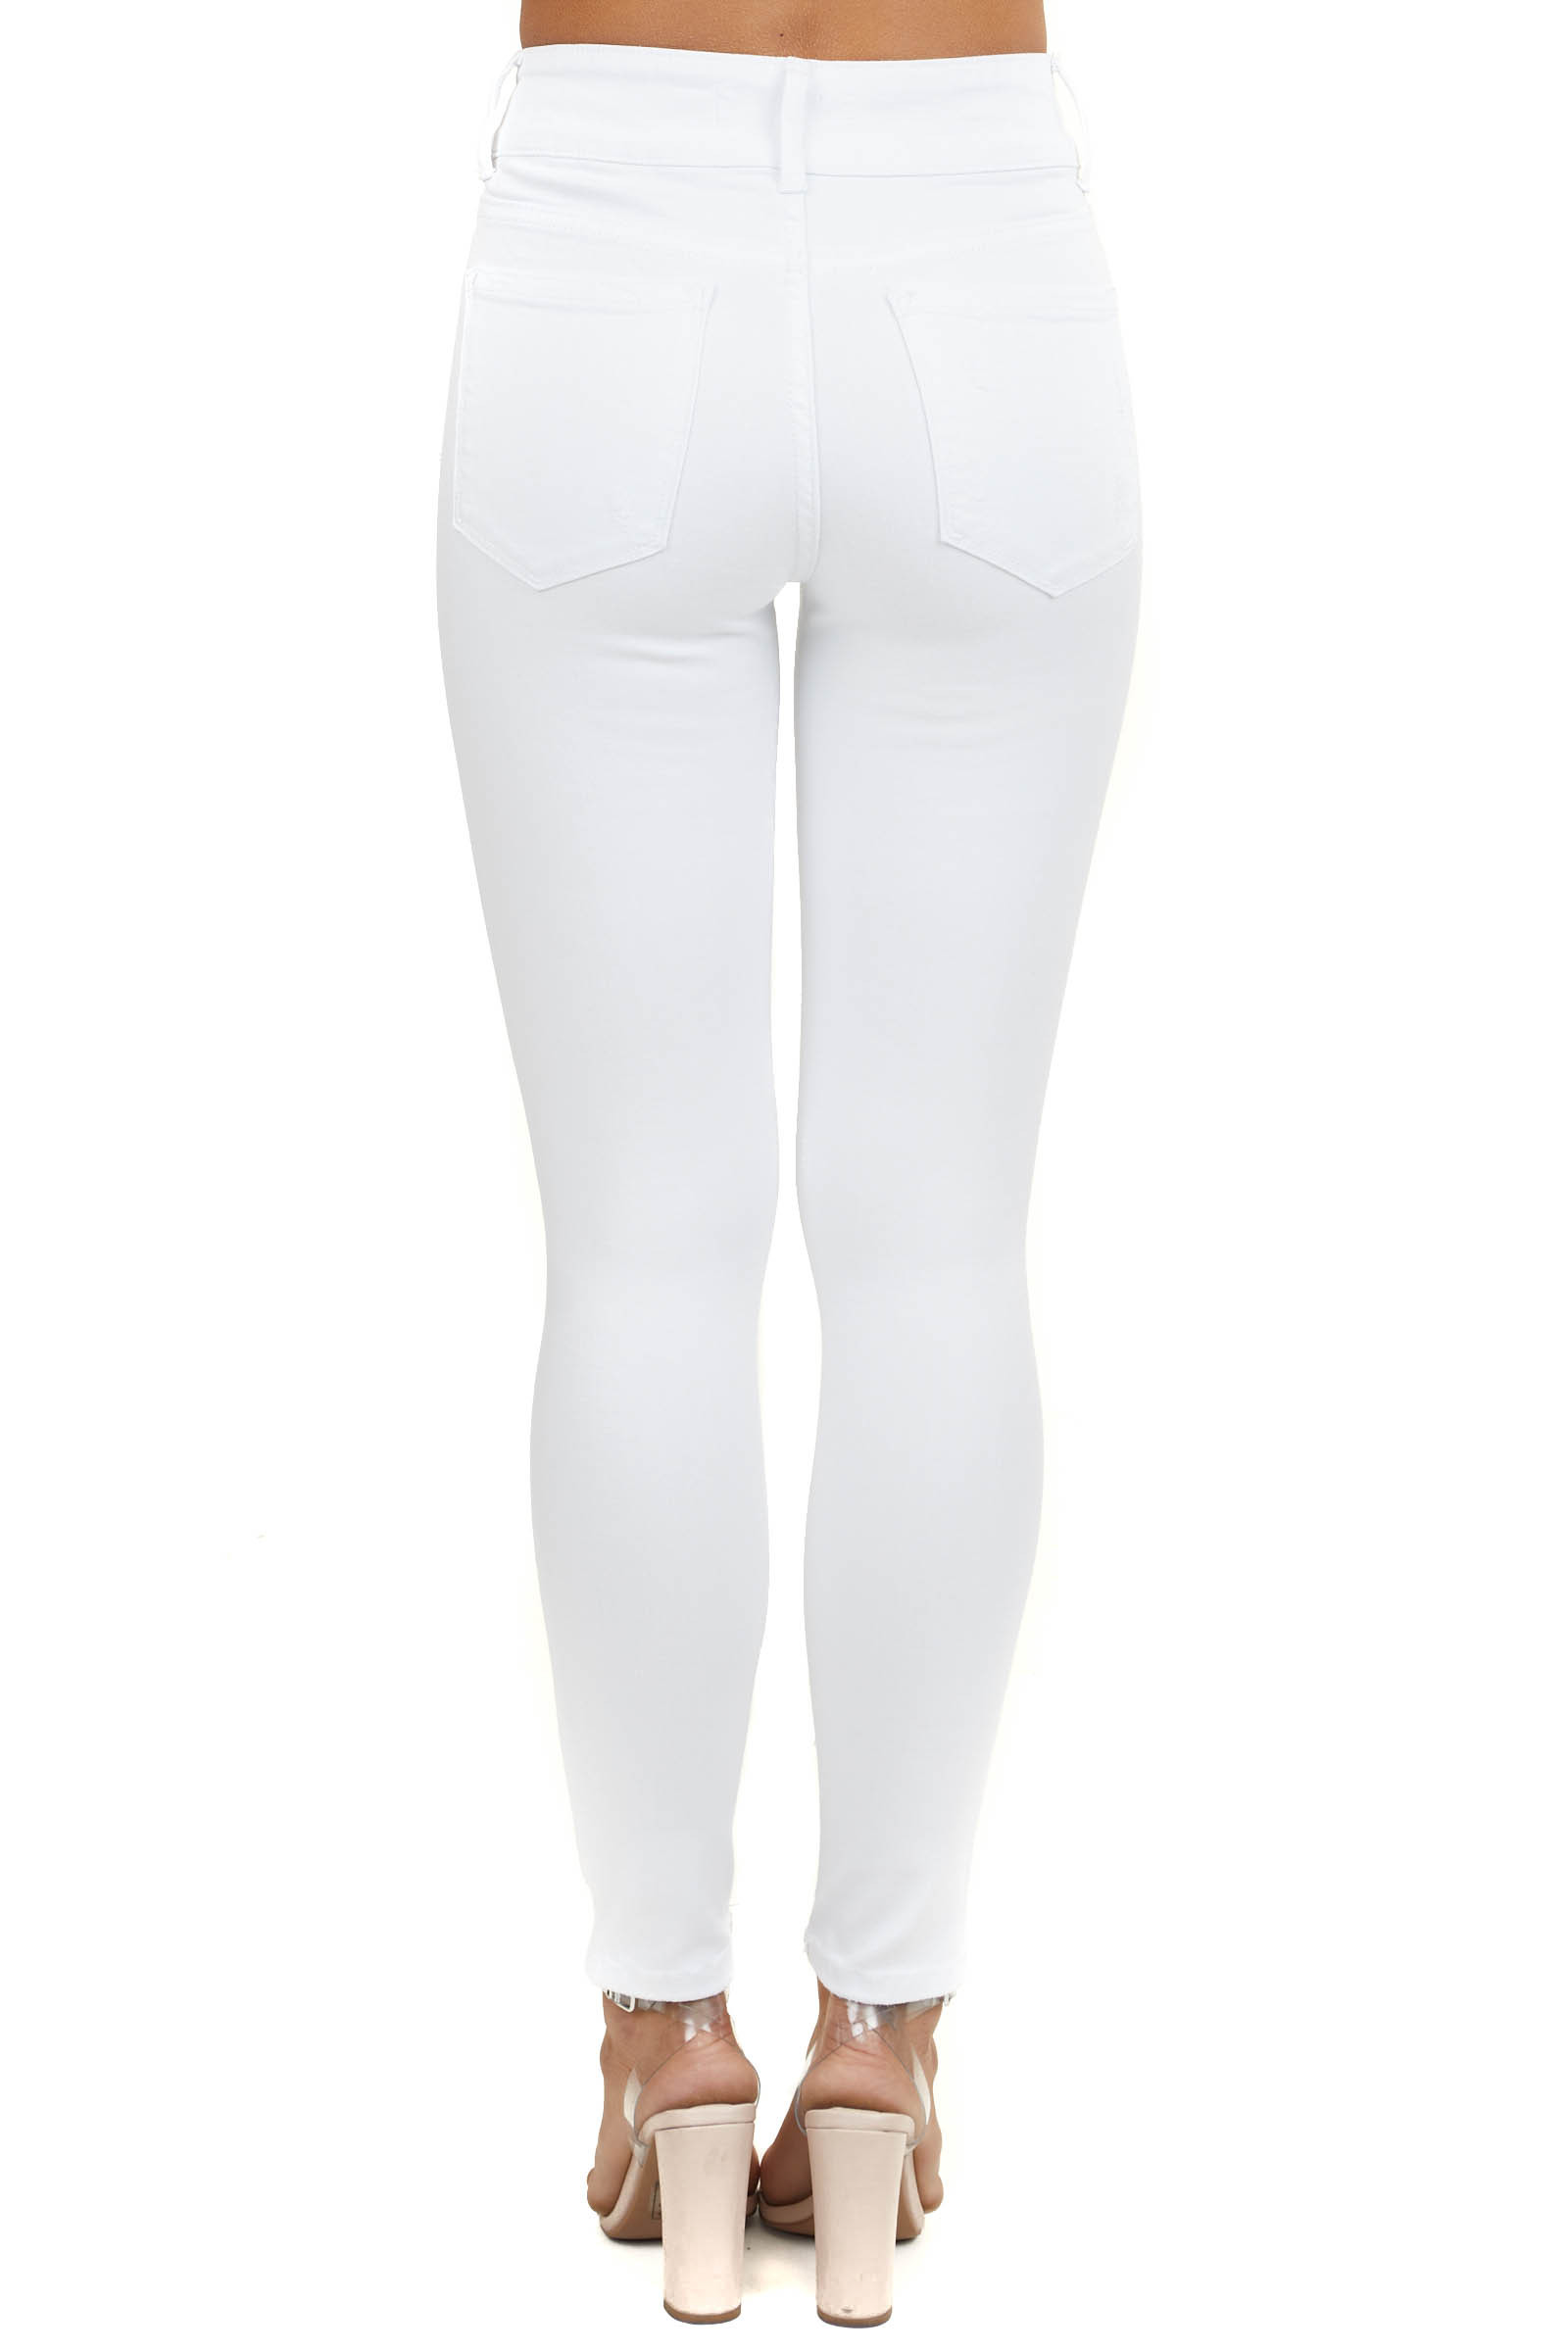 White High Rise Ankle Length Distressed Skinny Jeans